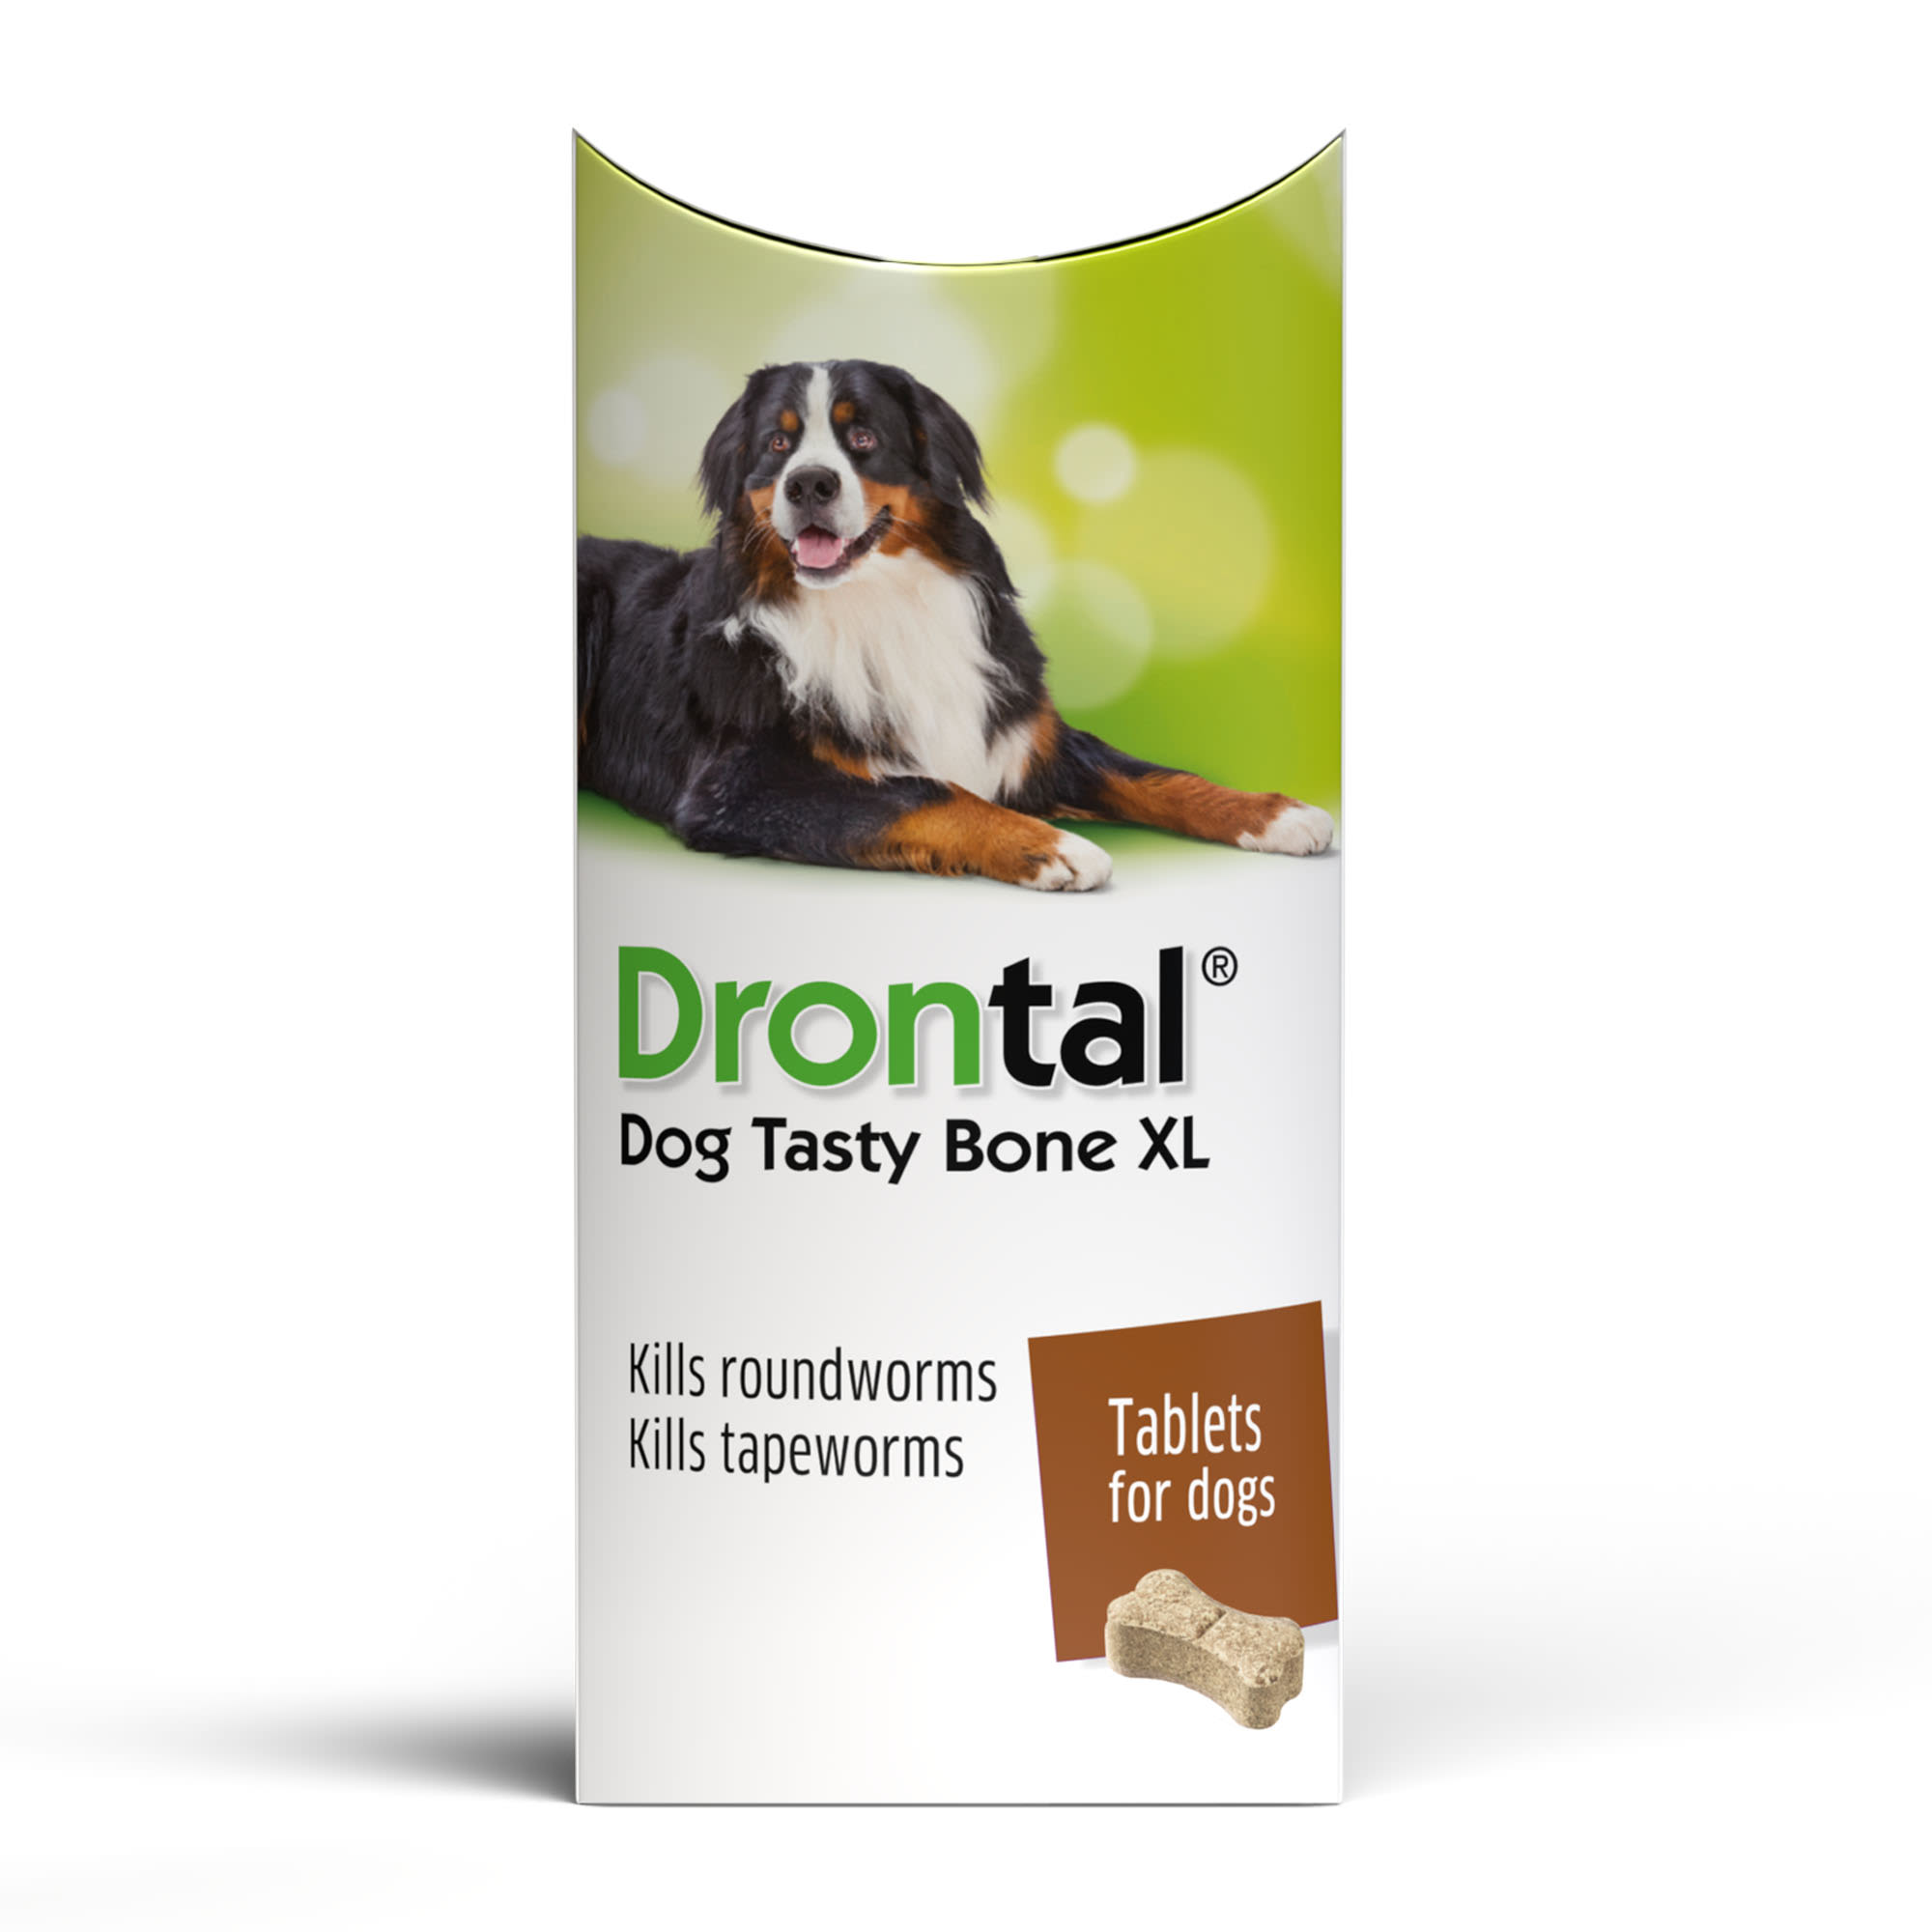 Drontal Dog Tasty Bone XL Worming Tablet